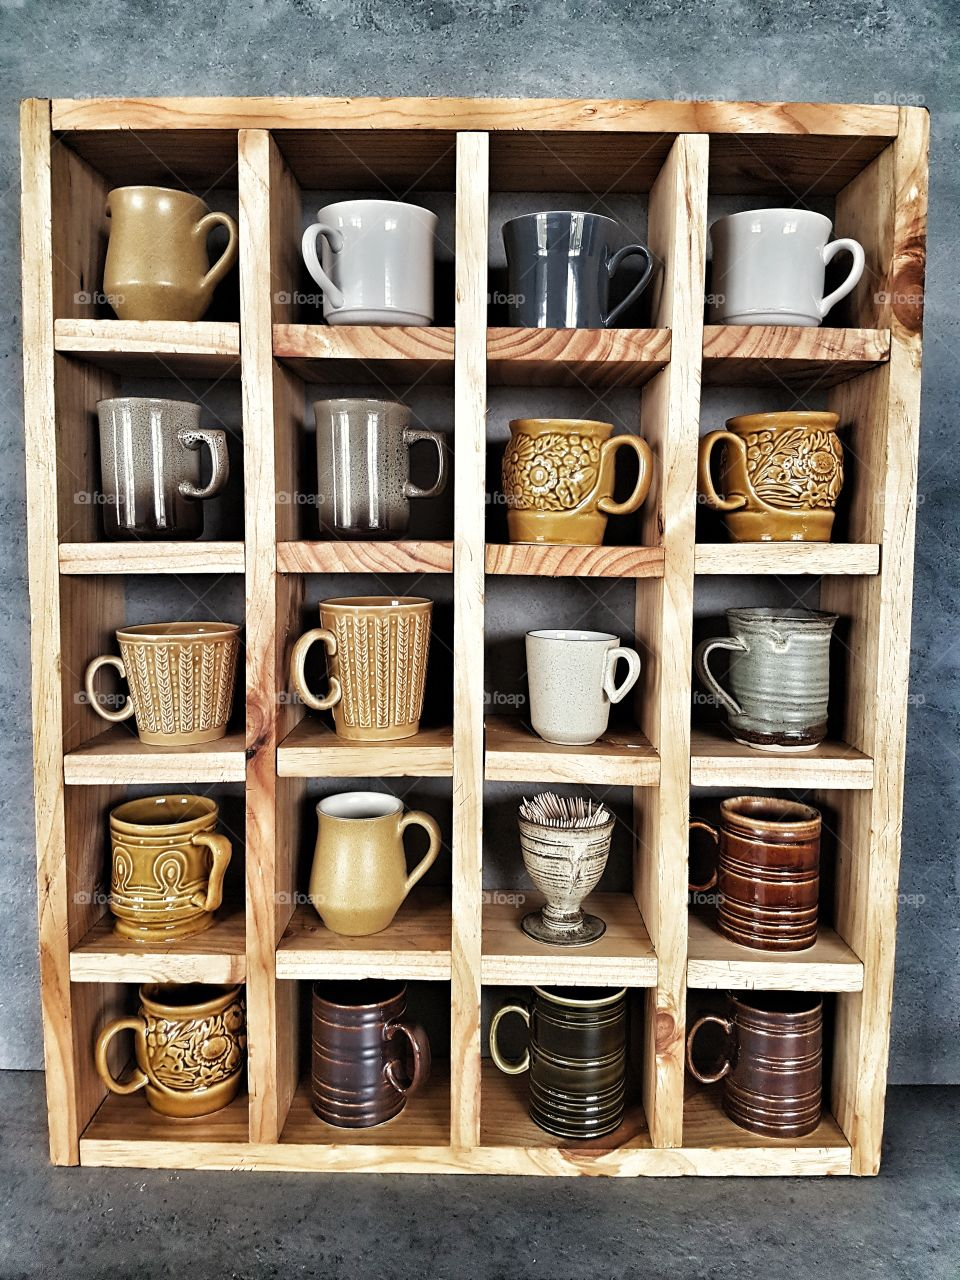 collection of vintage mugs and pottery on old rustic wooden shelf